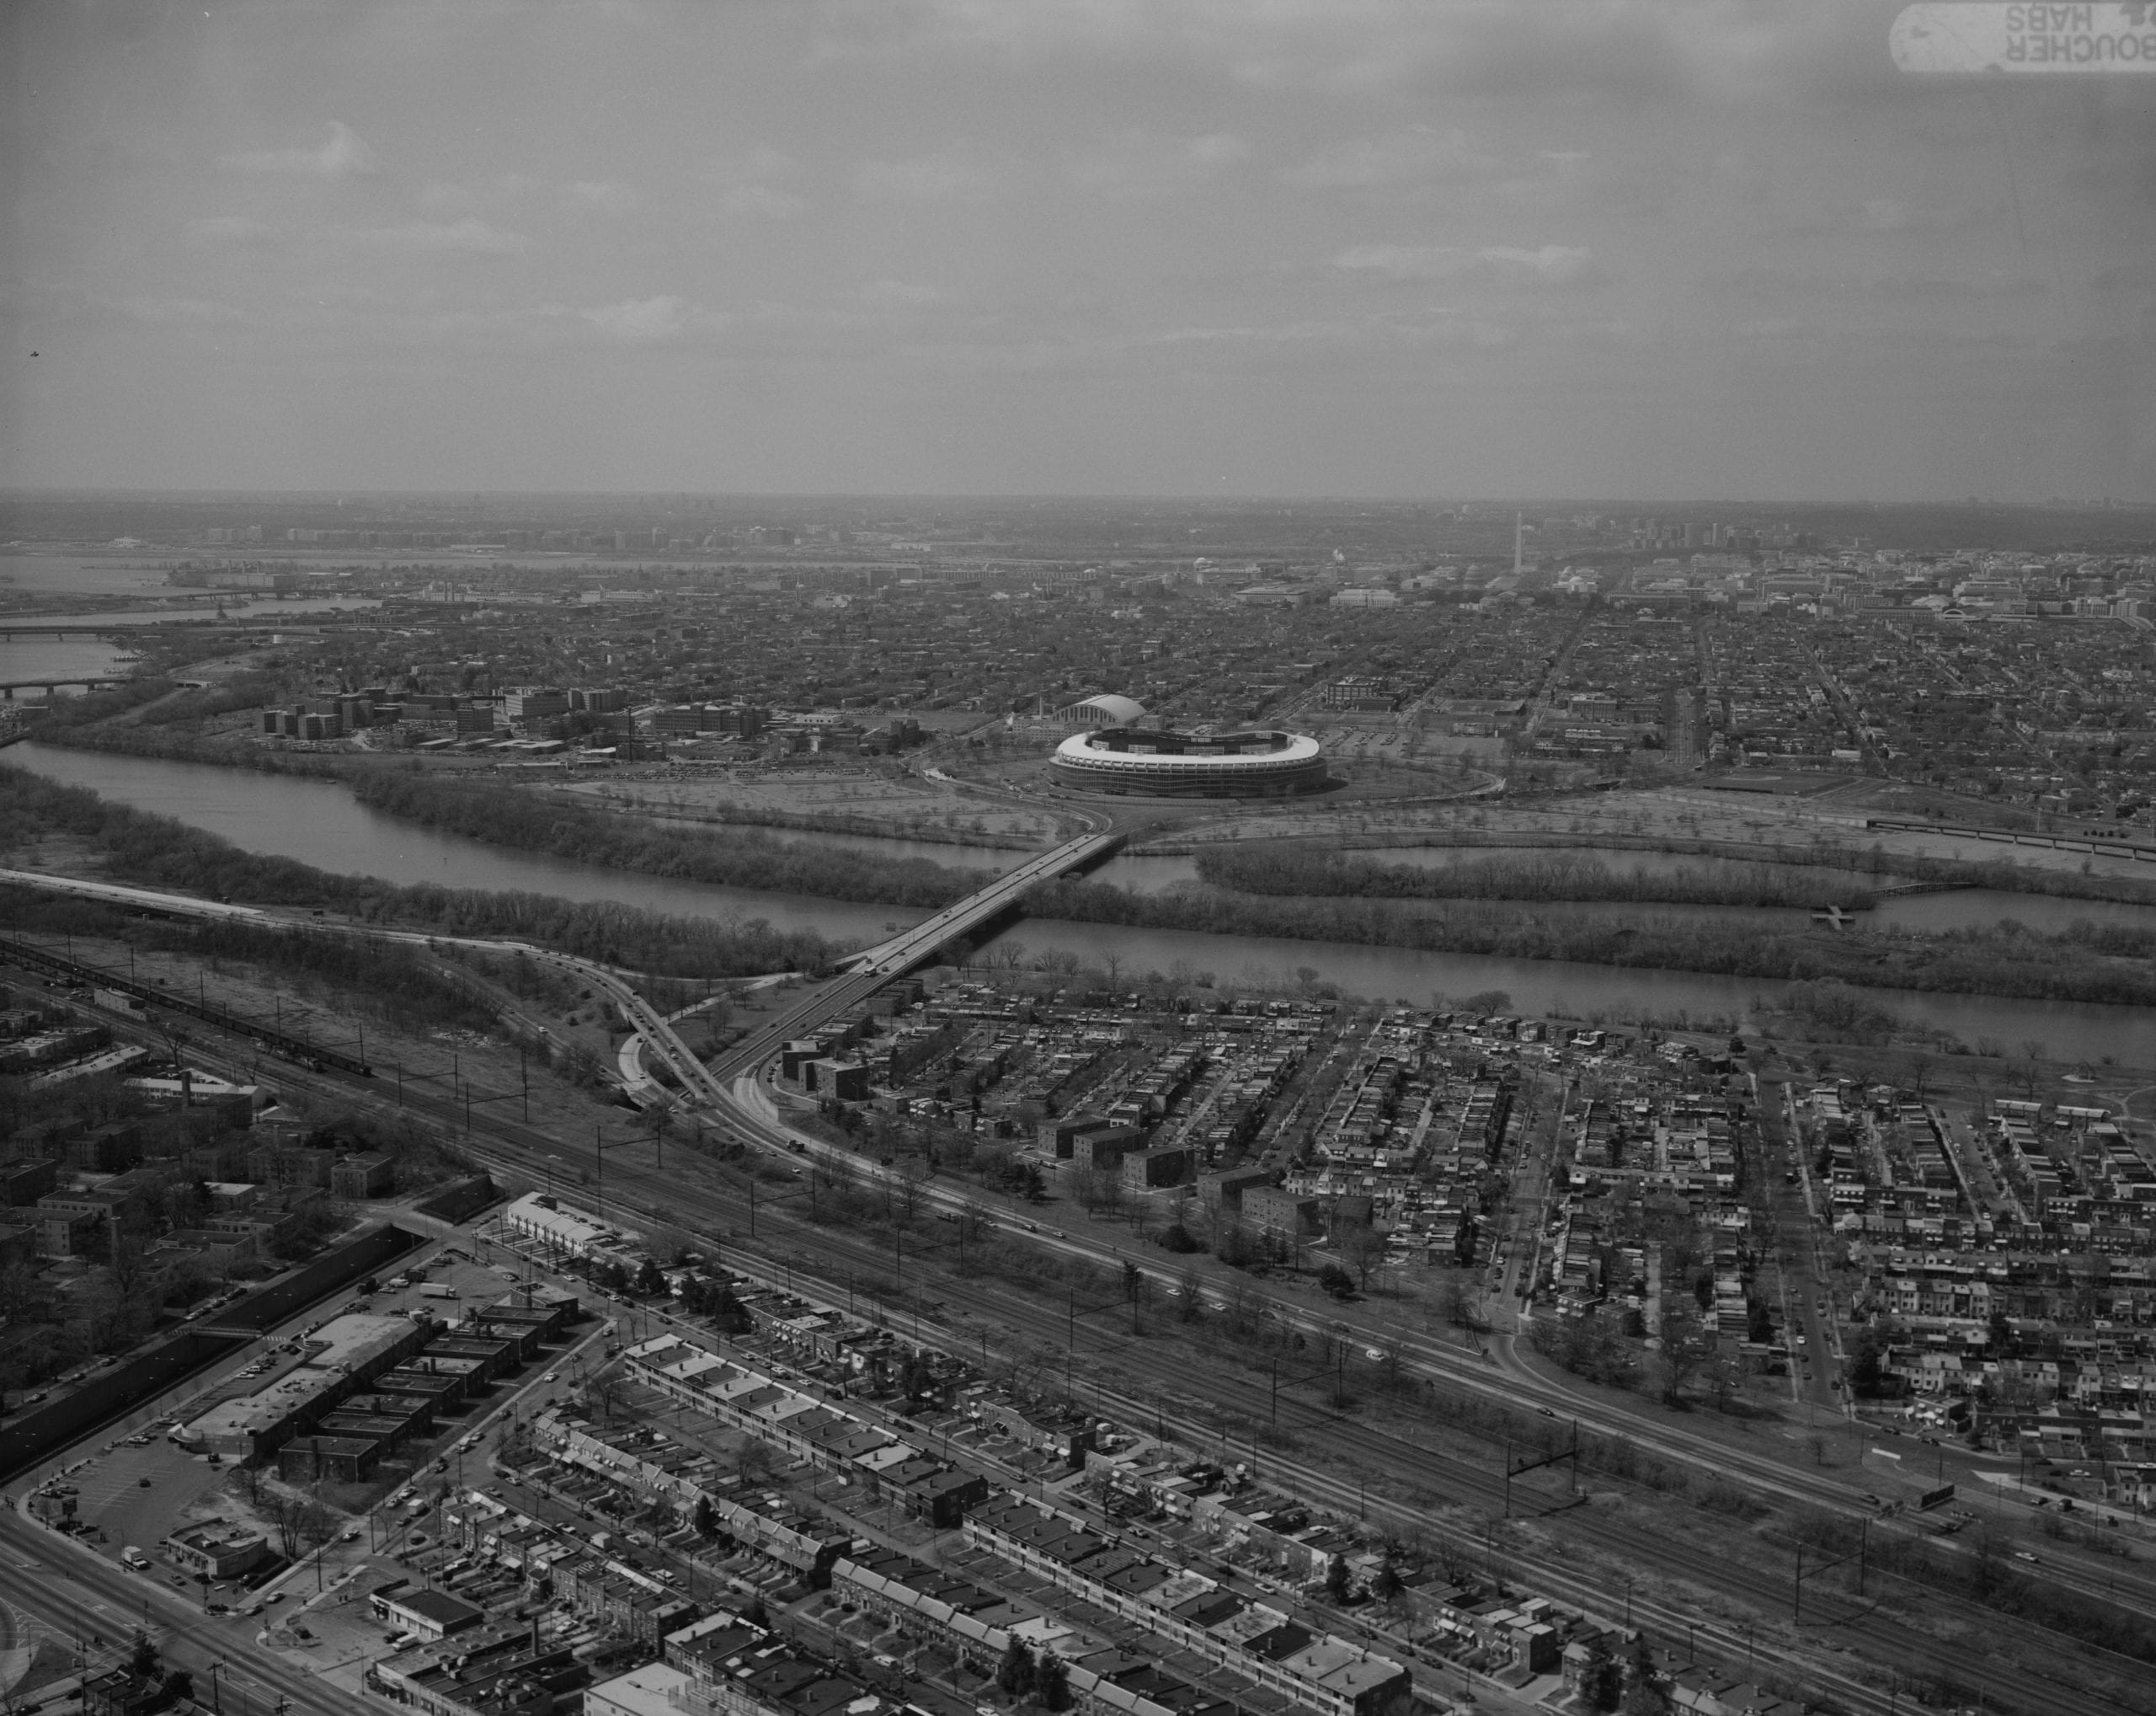 Incredible Aerial Views of D.C. From Anacostia